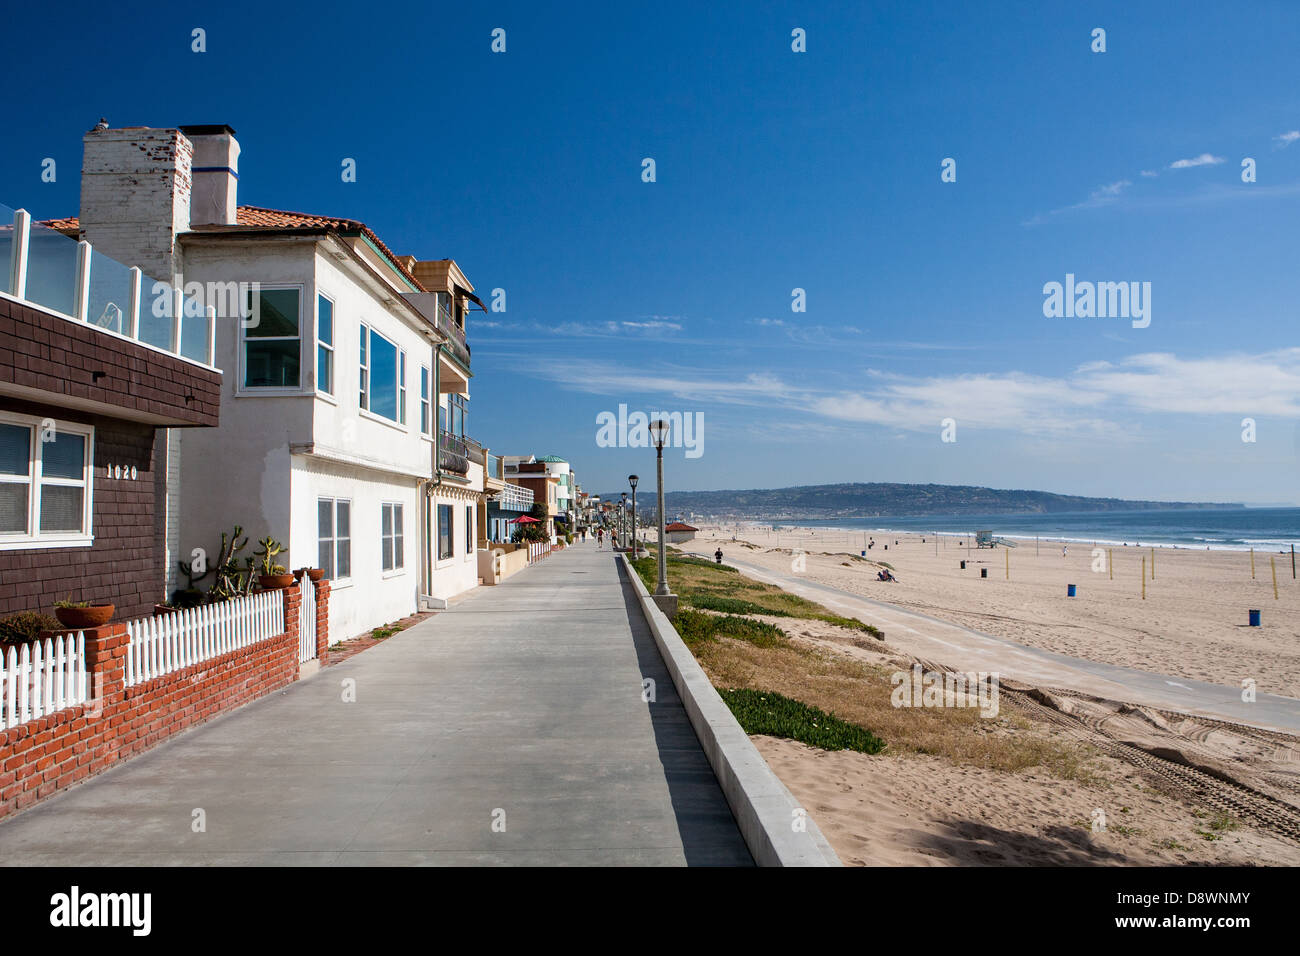 Properties on the waterfront in Manhattan Beach, Los Angeles, California, USA - Stock Image